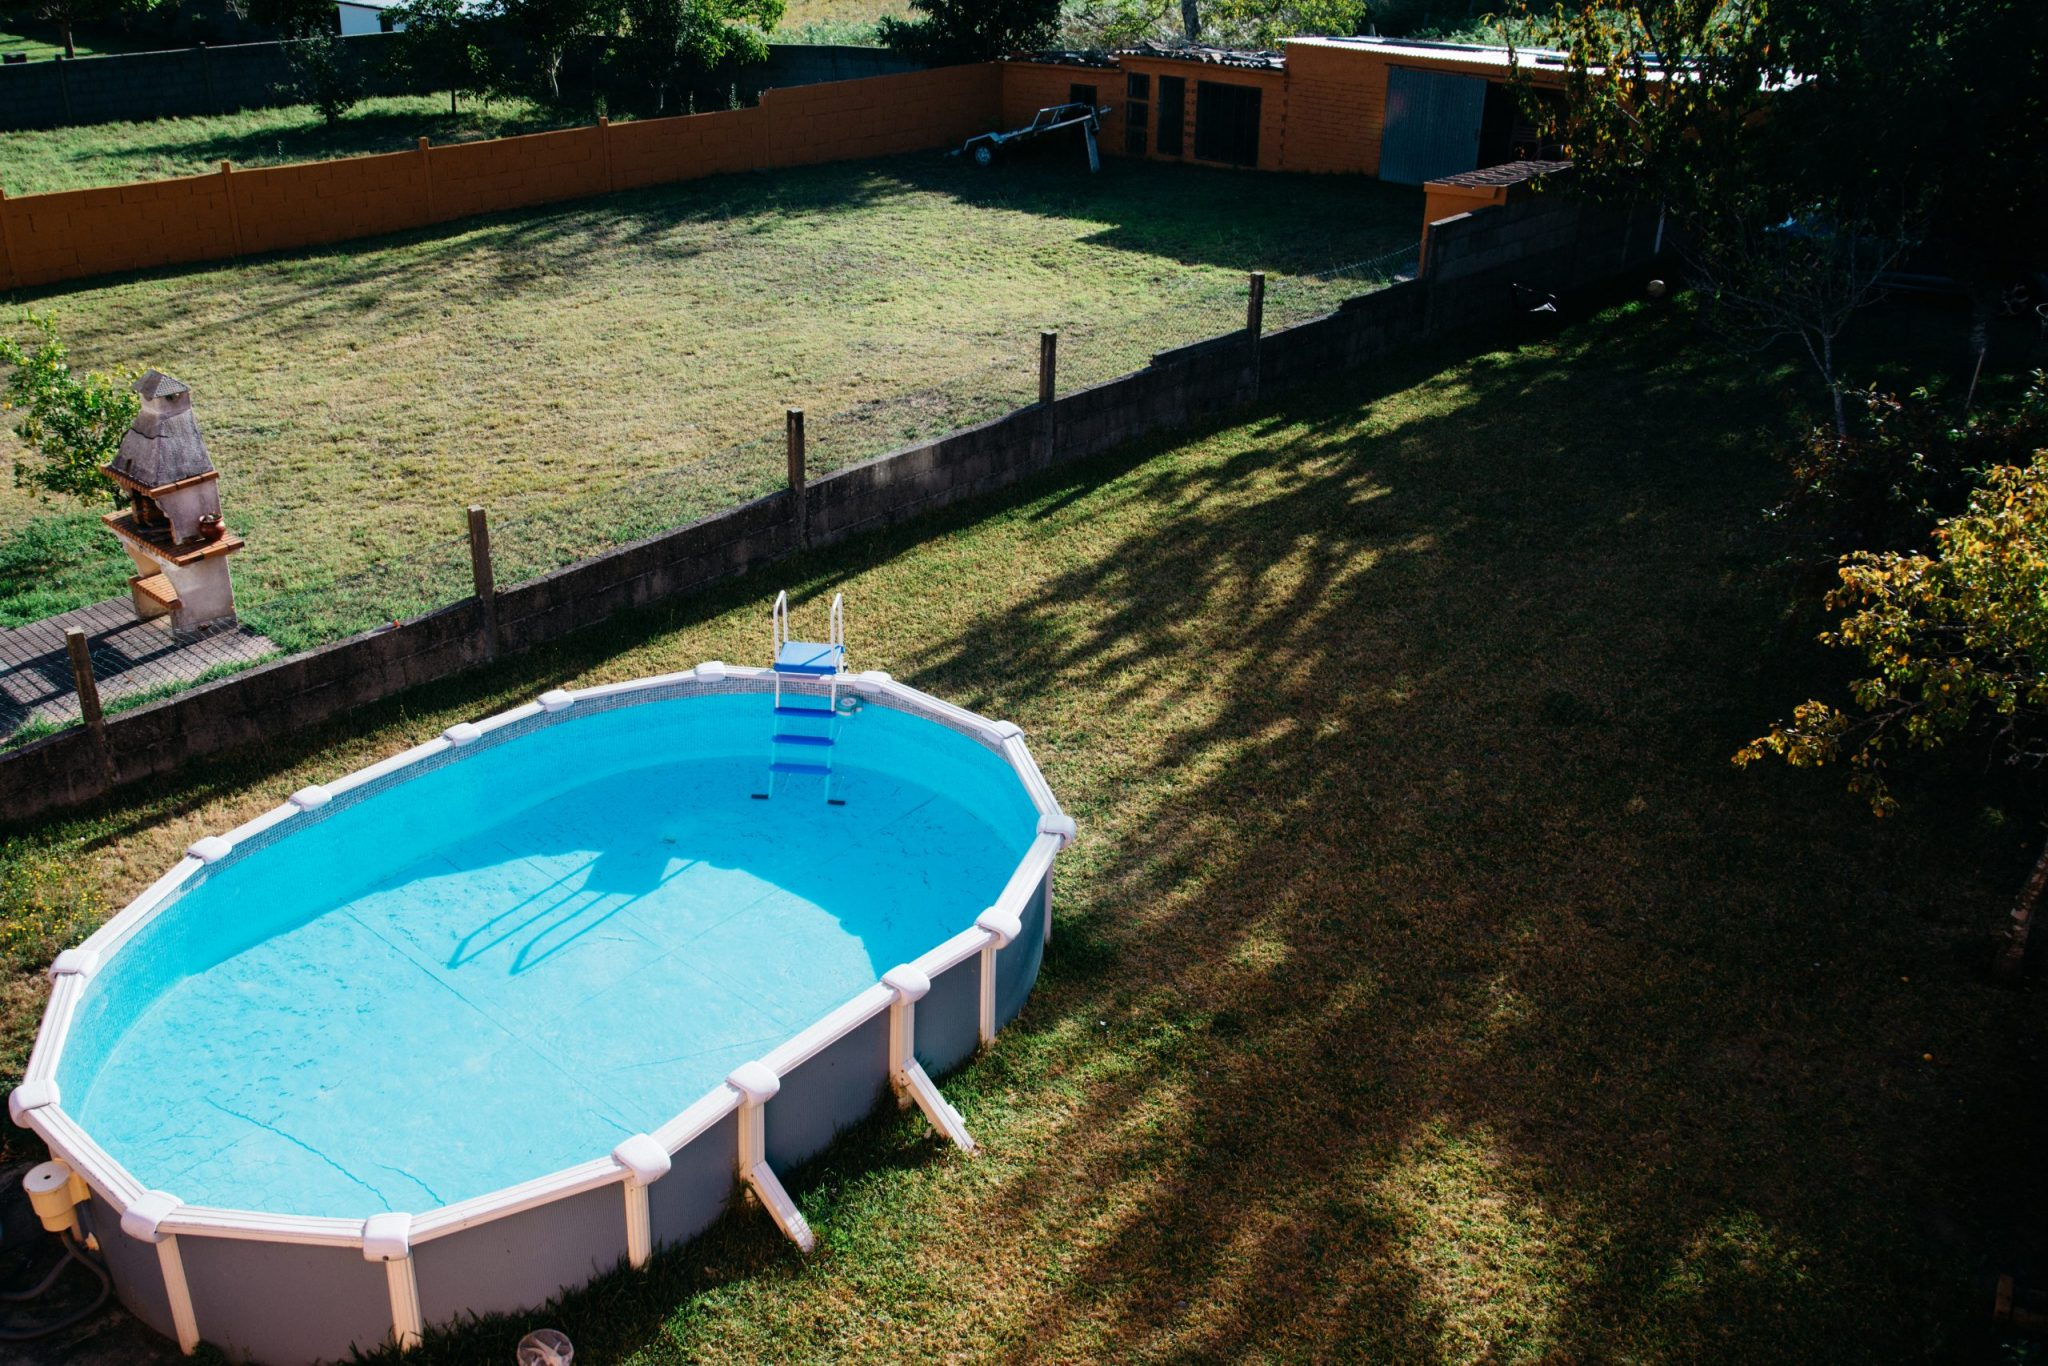 How to Design an Above-Ground Pool for your Backyard ...